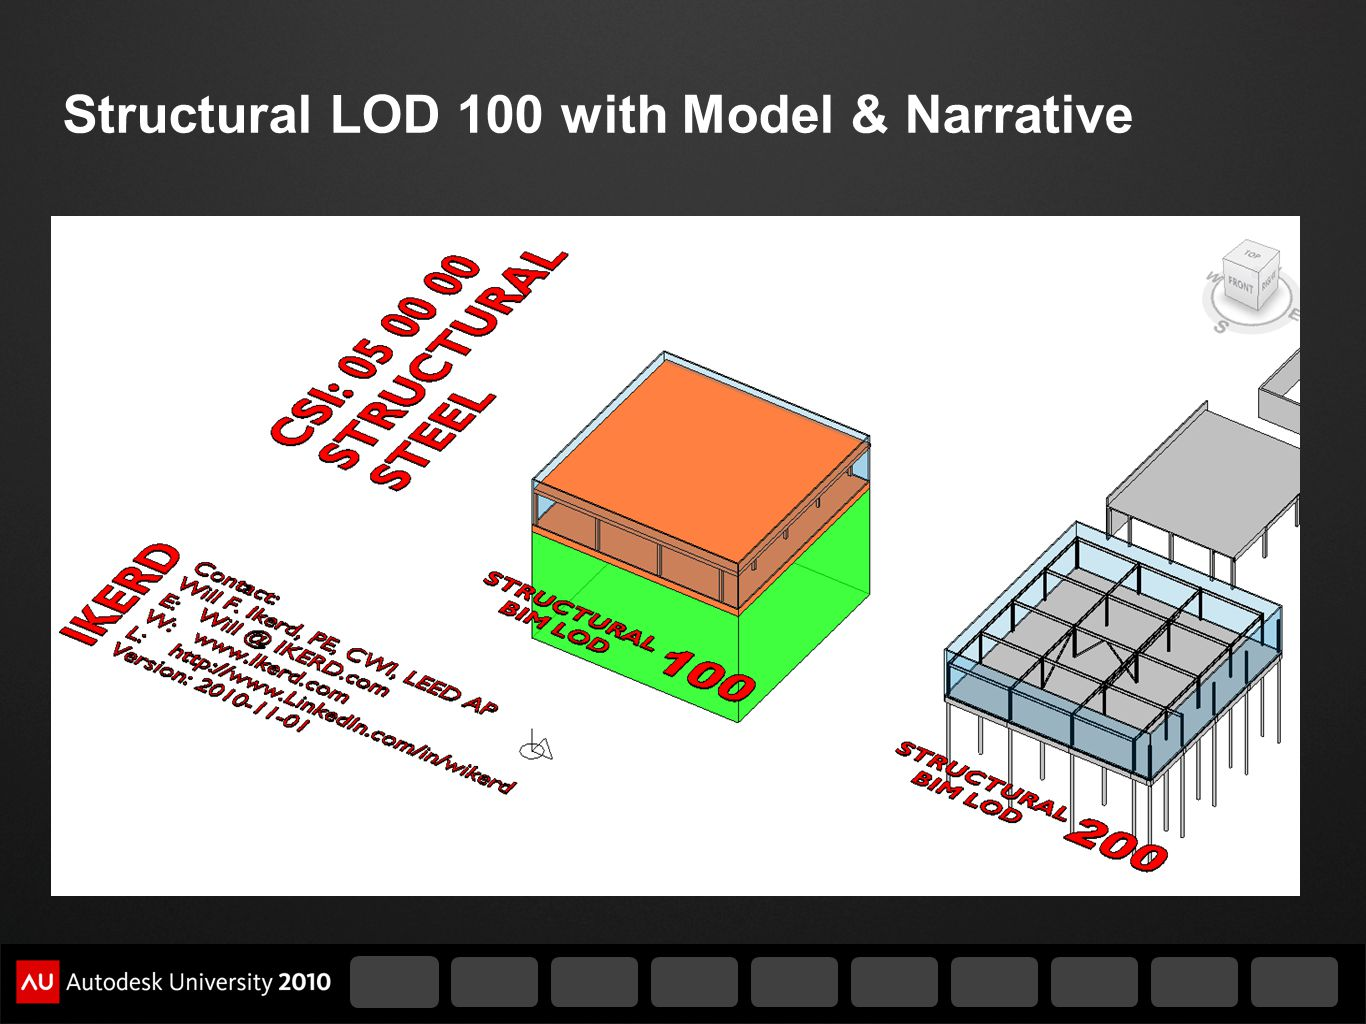 Structural LOD 100 with Model & Narrative